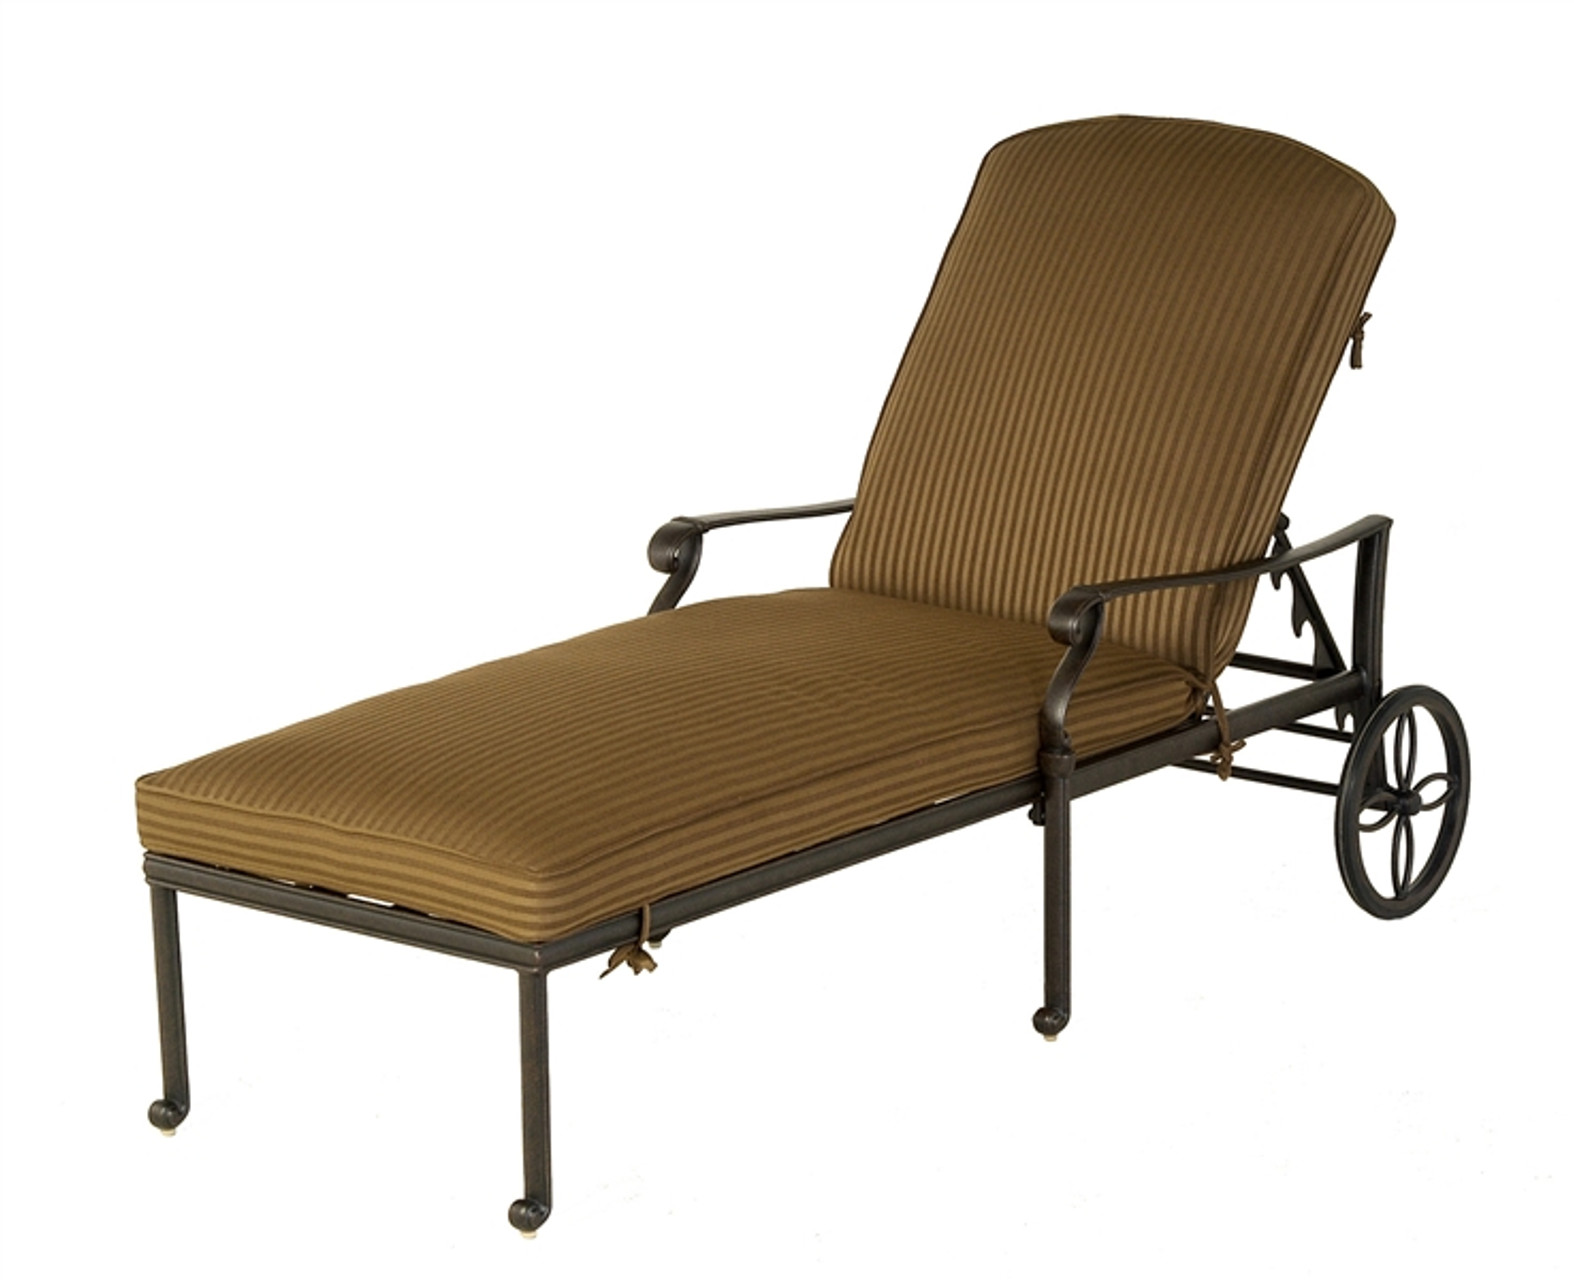 Hanamint Mayfair Outdoor Chaise Lounge